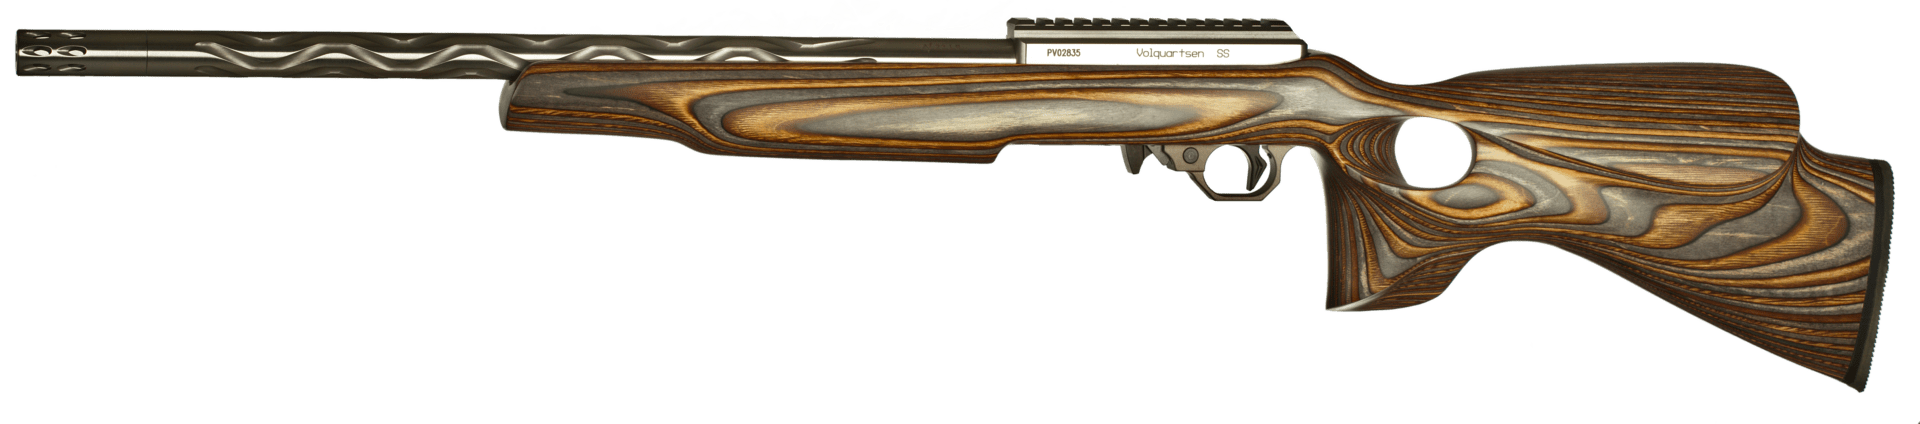 1834-sf_1 with brown_gray thumbhole stock